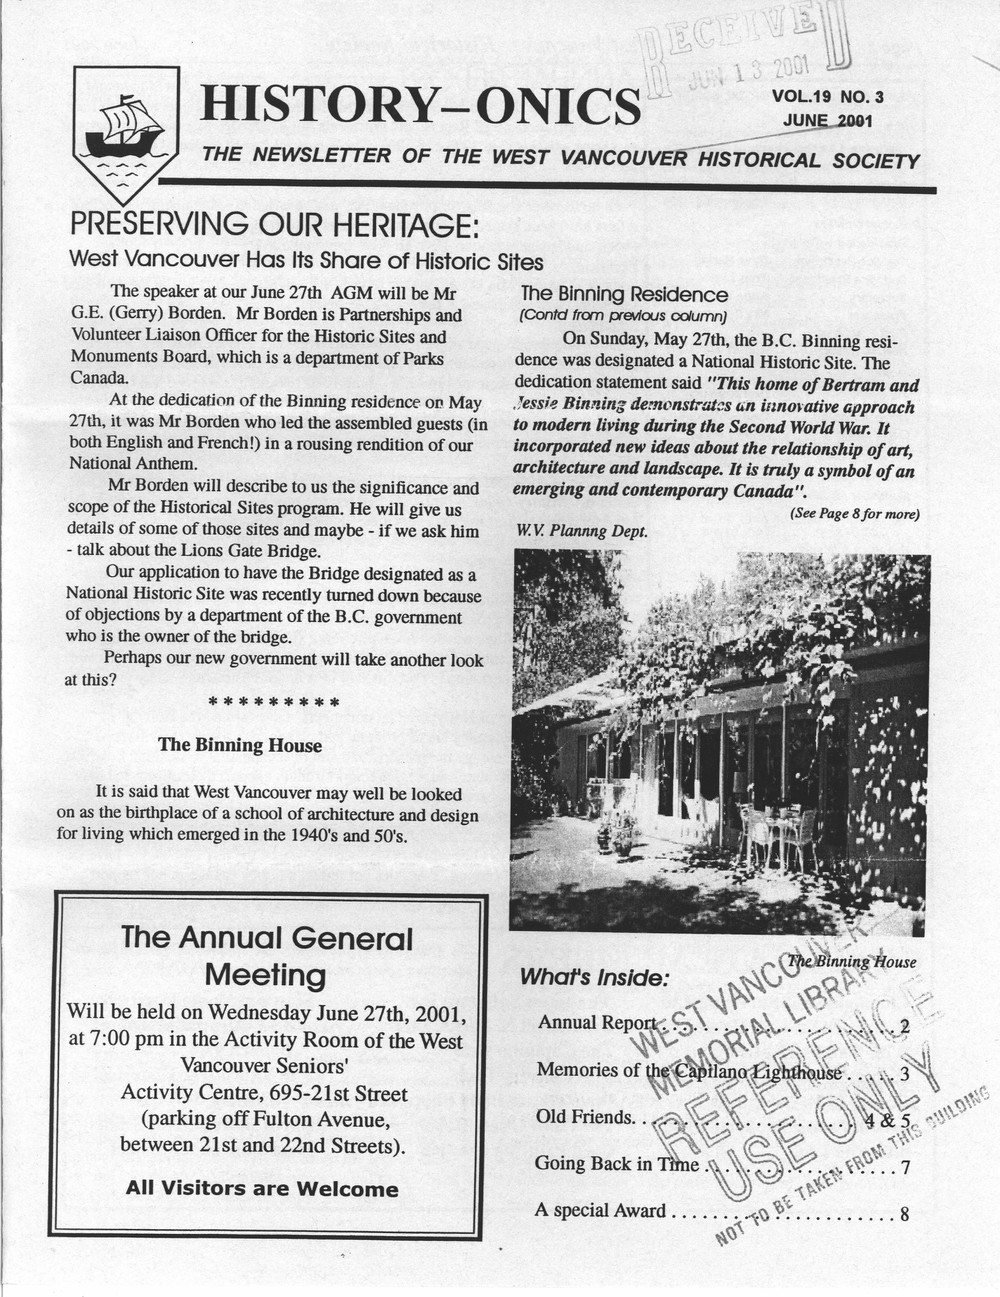 History-onics (West Vancouver, BC: West Vancouver Historical Society), June 2001